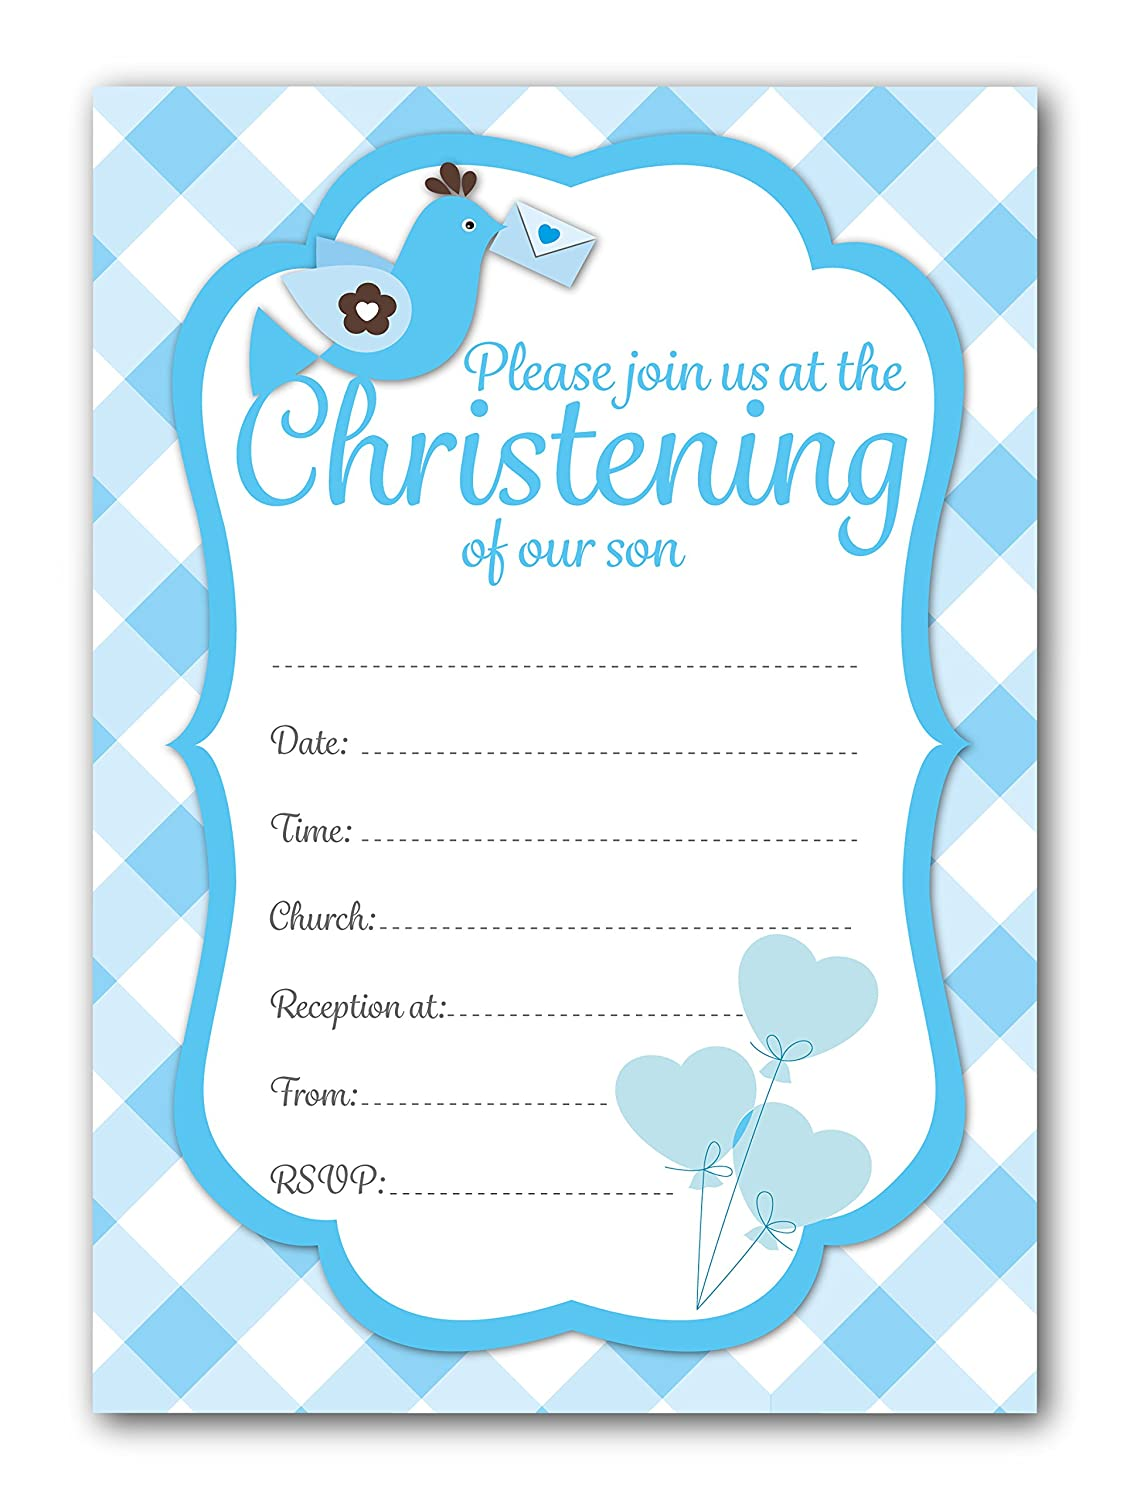 Christening Invitations Blue Check Design With Envelopes